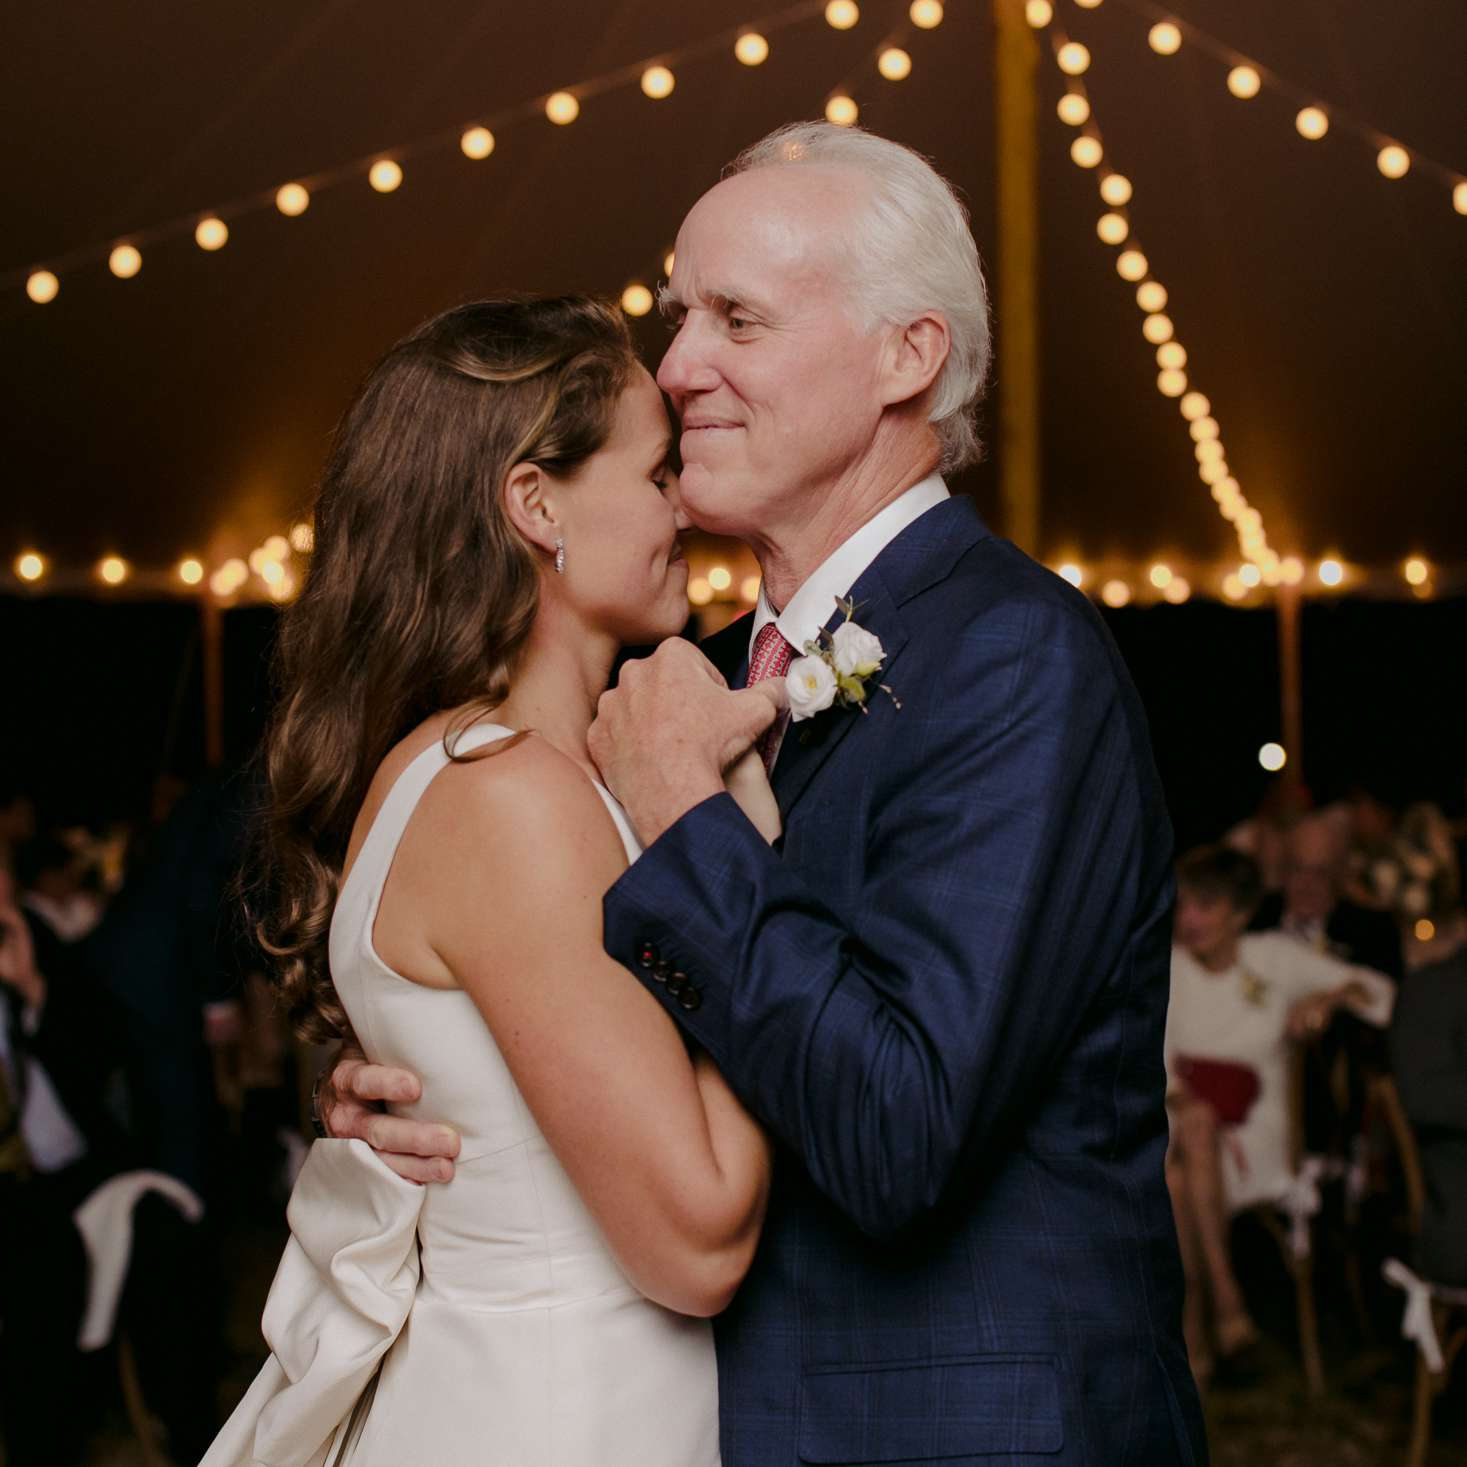 at-home rustic massachusetts wedding, bride and father dancing